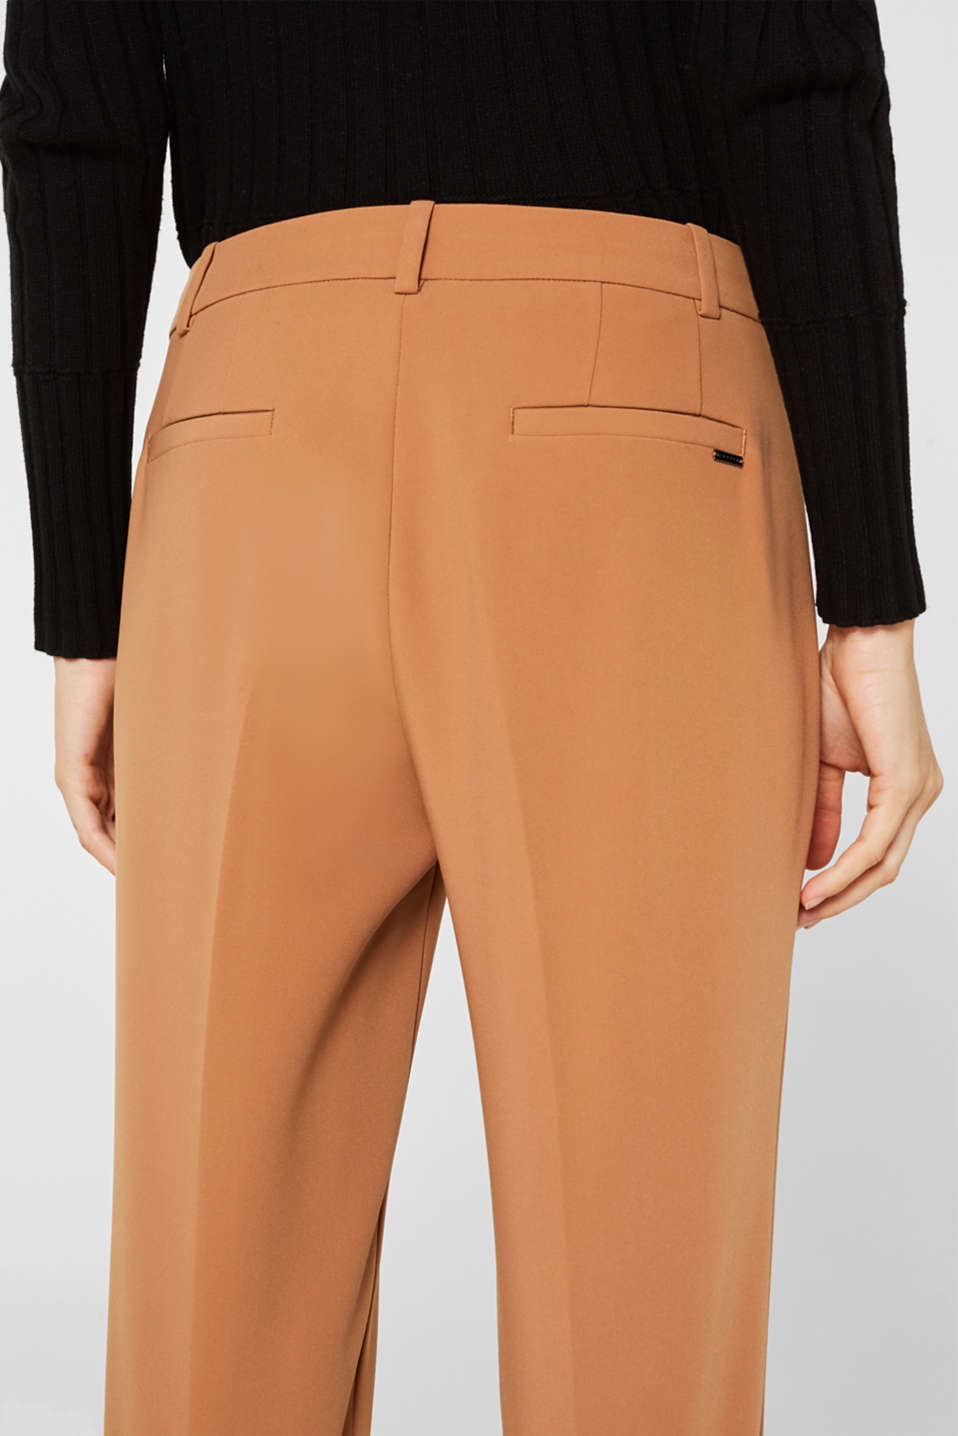 TECHNO TWILL mix + match stretch trousers, TOFFEE, detail image number 5